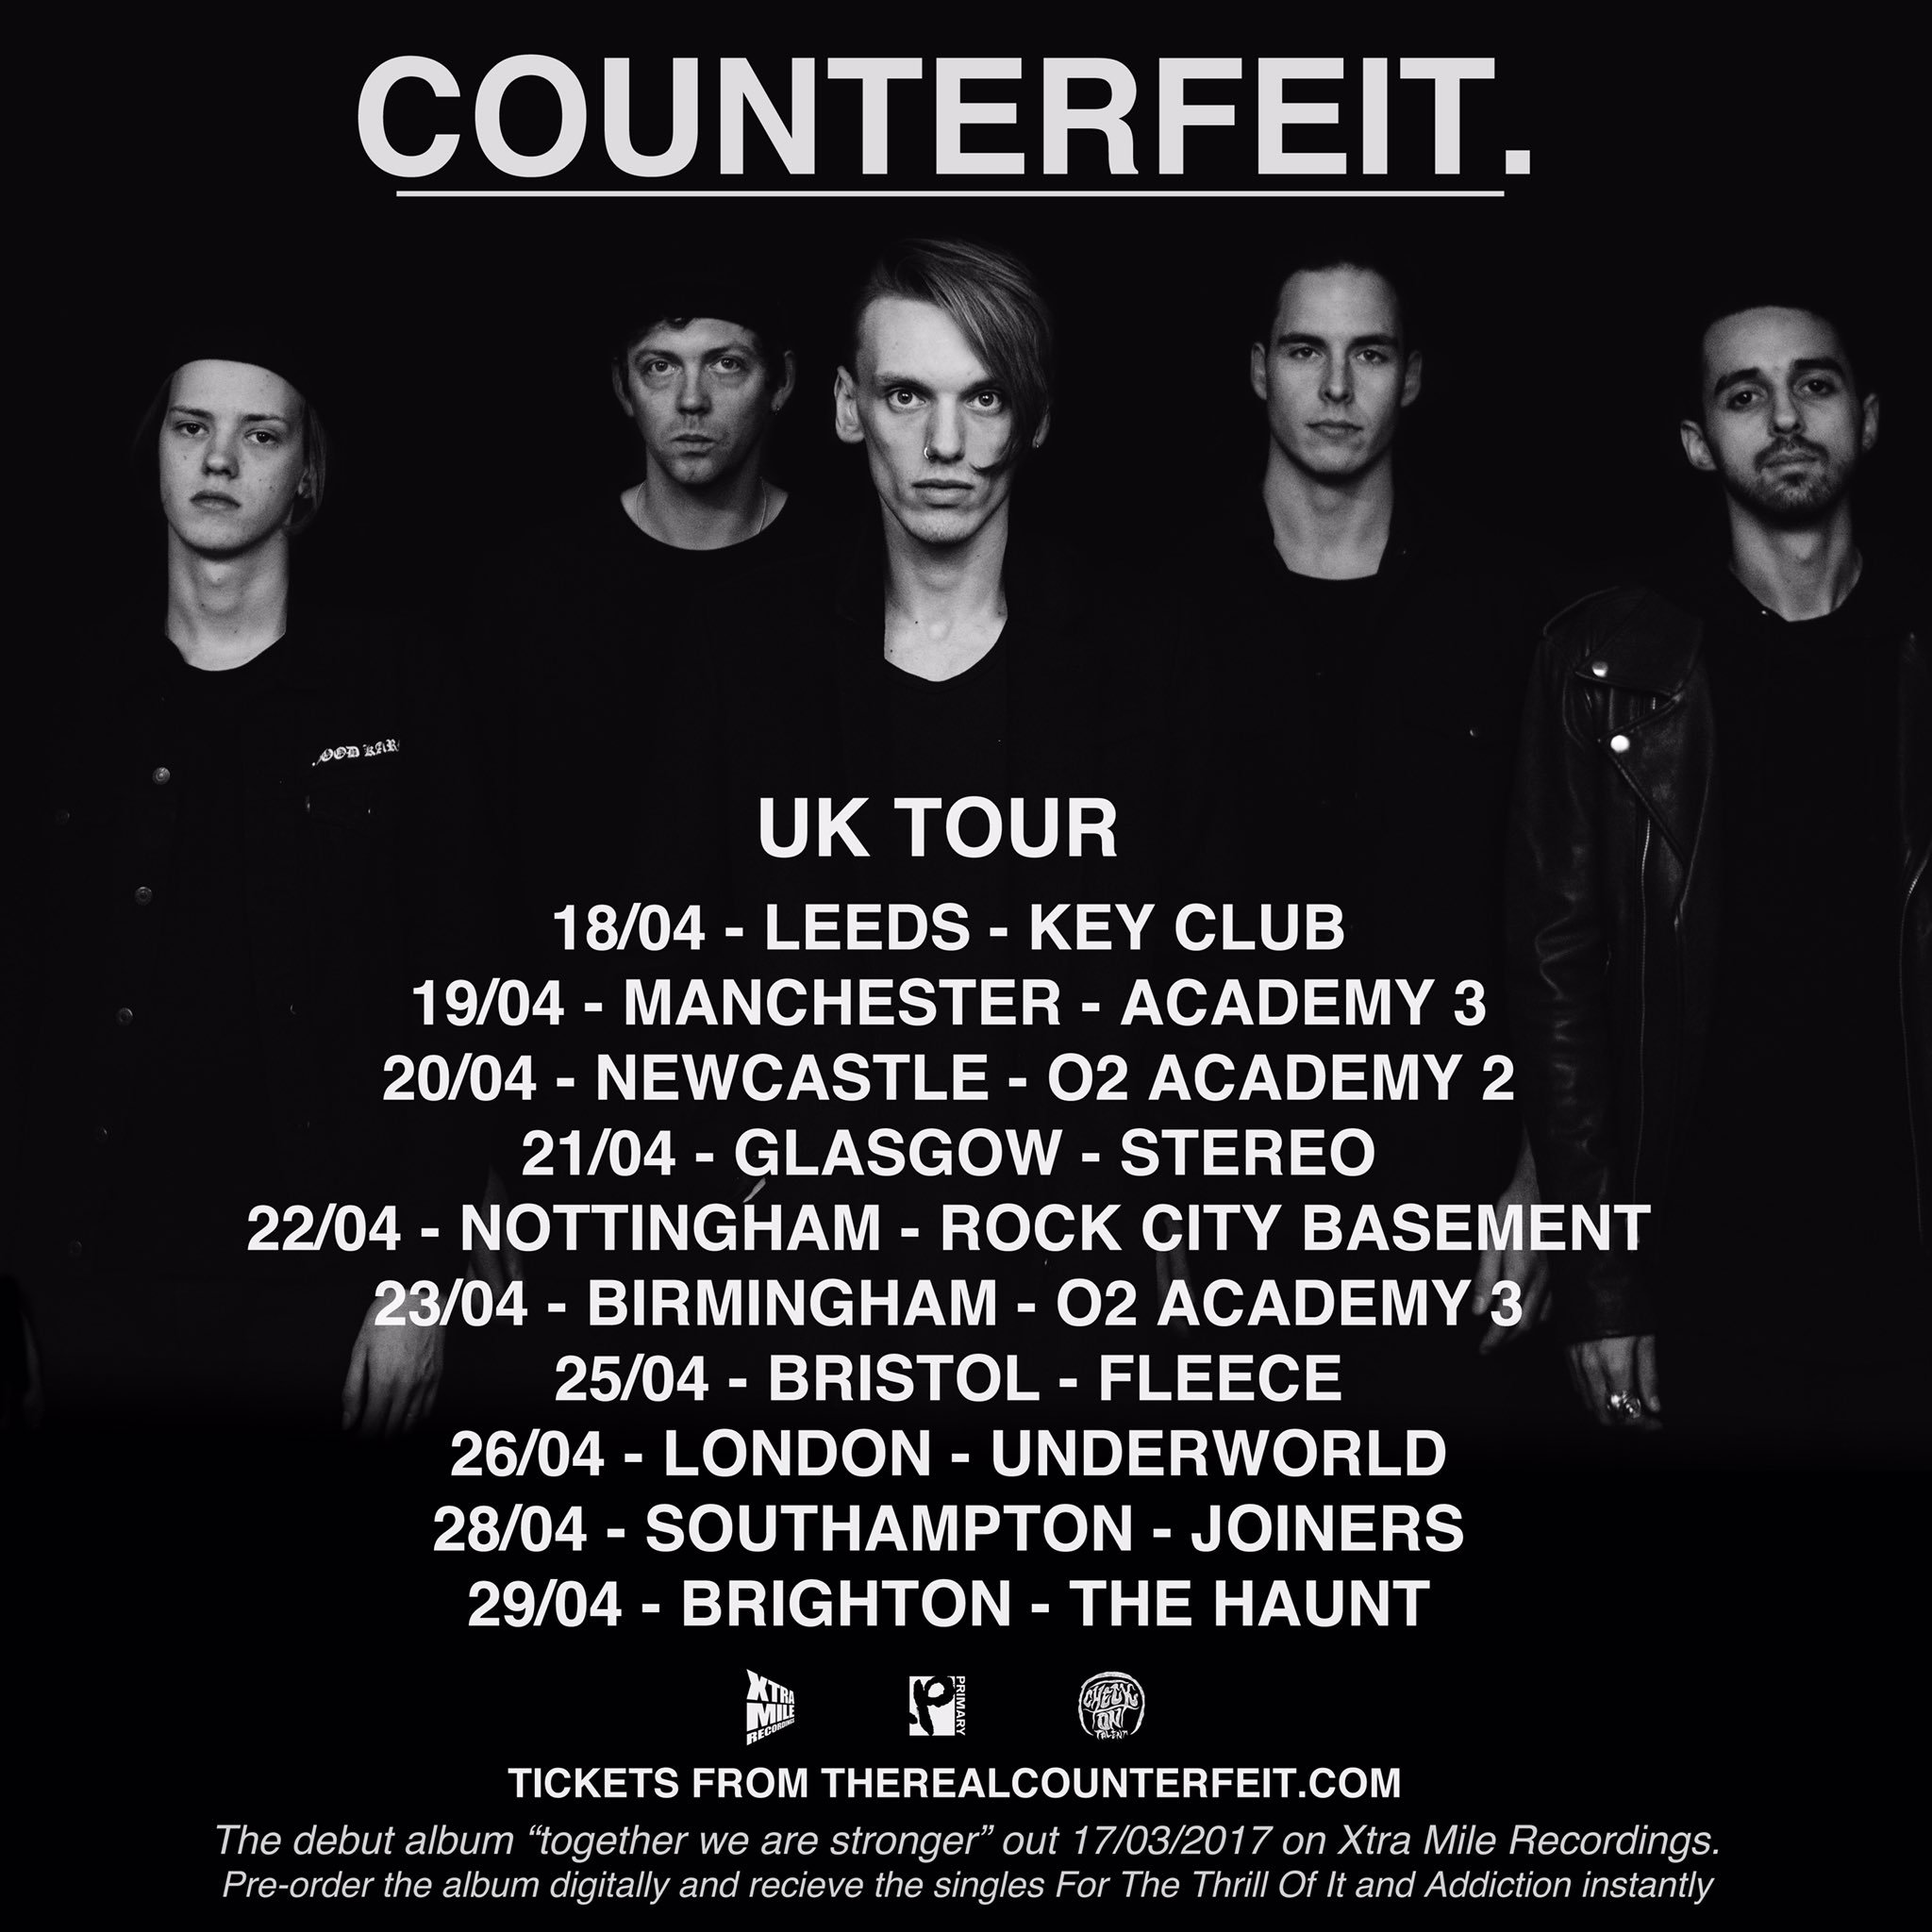 UK friends. We're back out pon da road. https://t.co/e0hl3zOFHo if you're keen @counterfeitrock Bye. https://t.co/QEc1XrJP1y